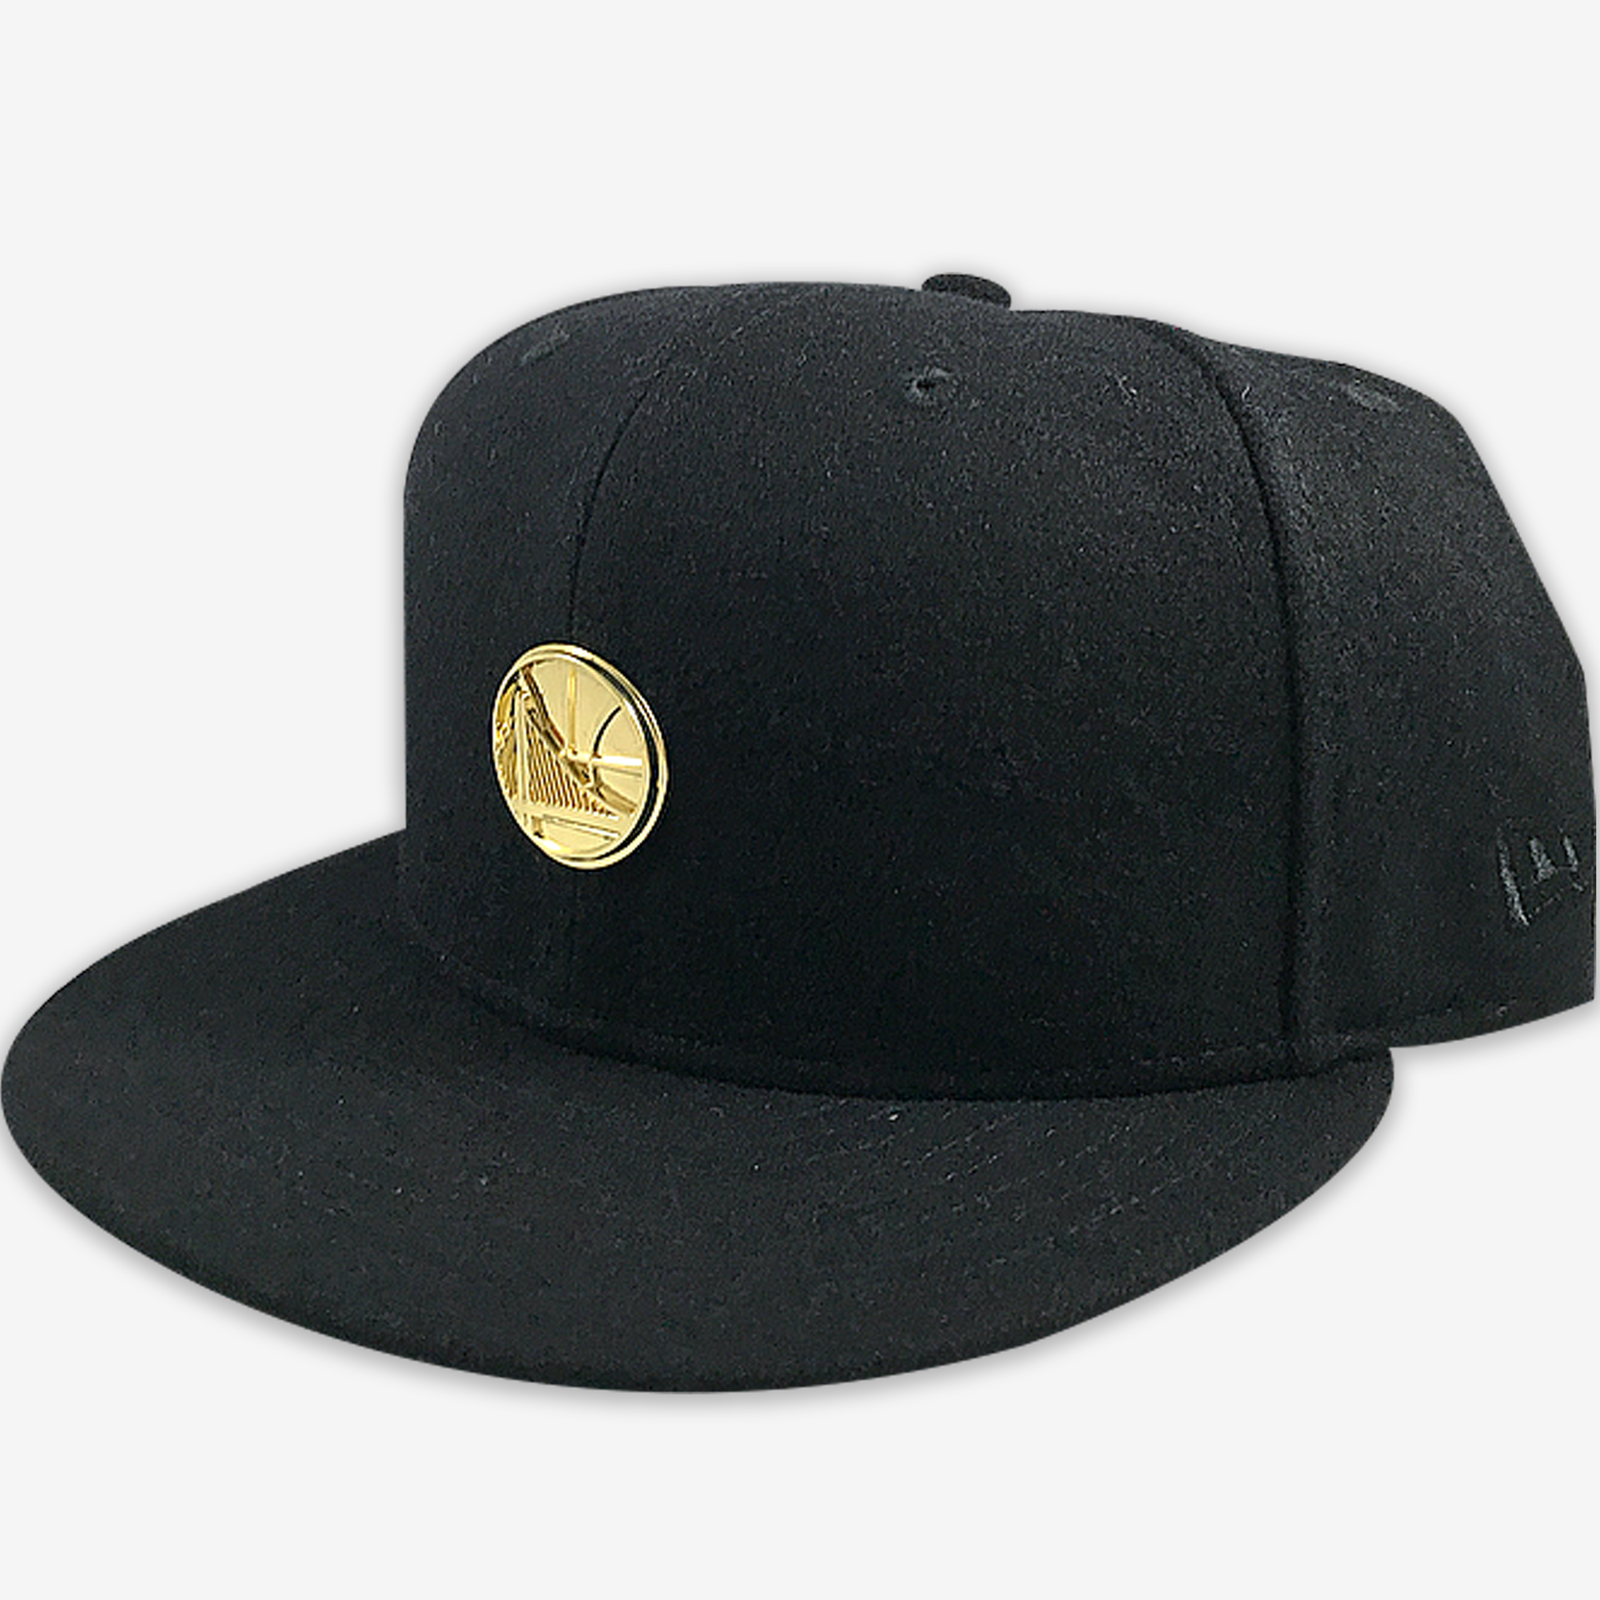 Golden State Warriors New Era Snapback